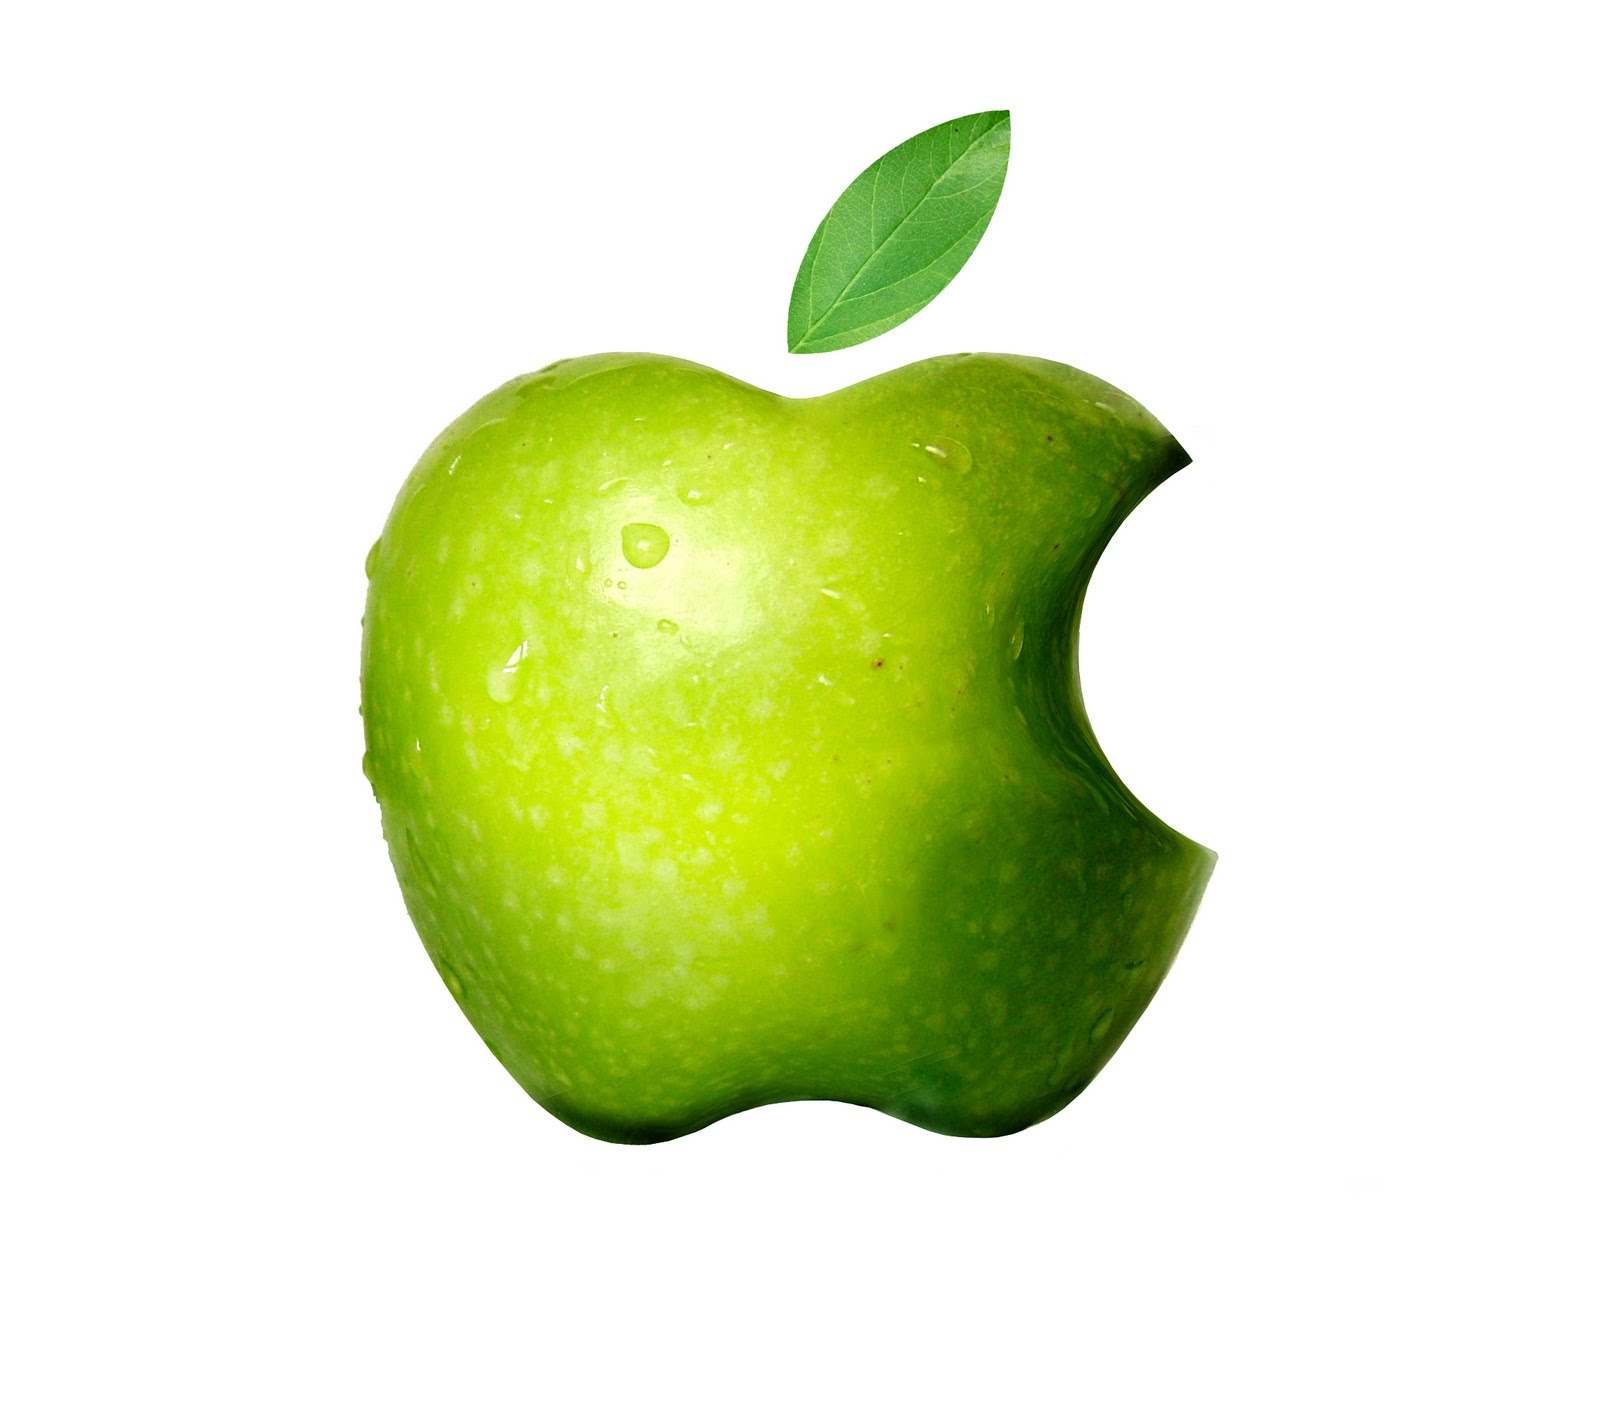 http://blog.colourstudio.com/2013/08/how-paul-rand-and-ibm-fathered-apple.html